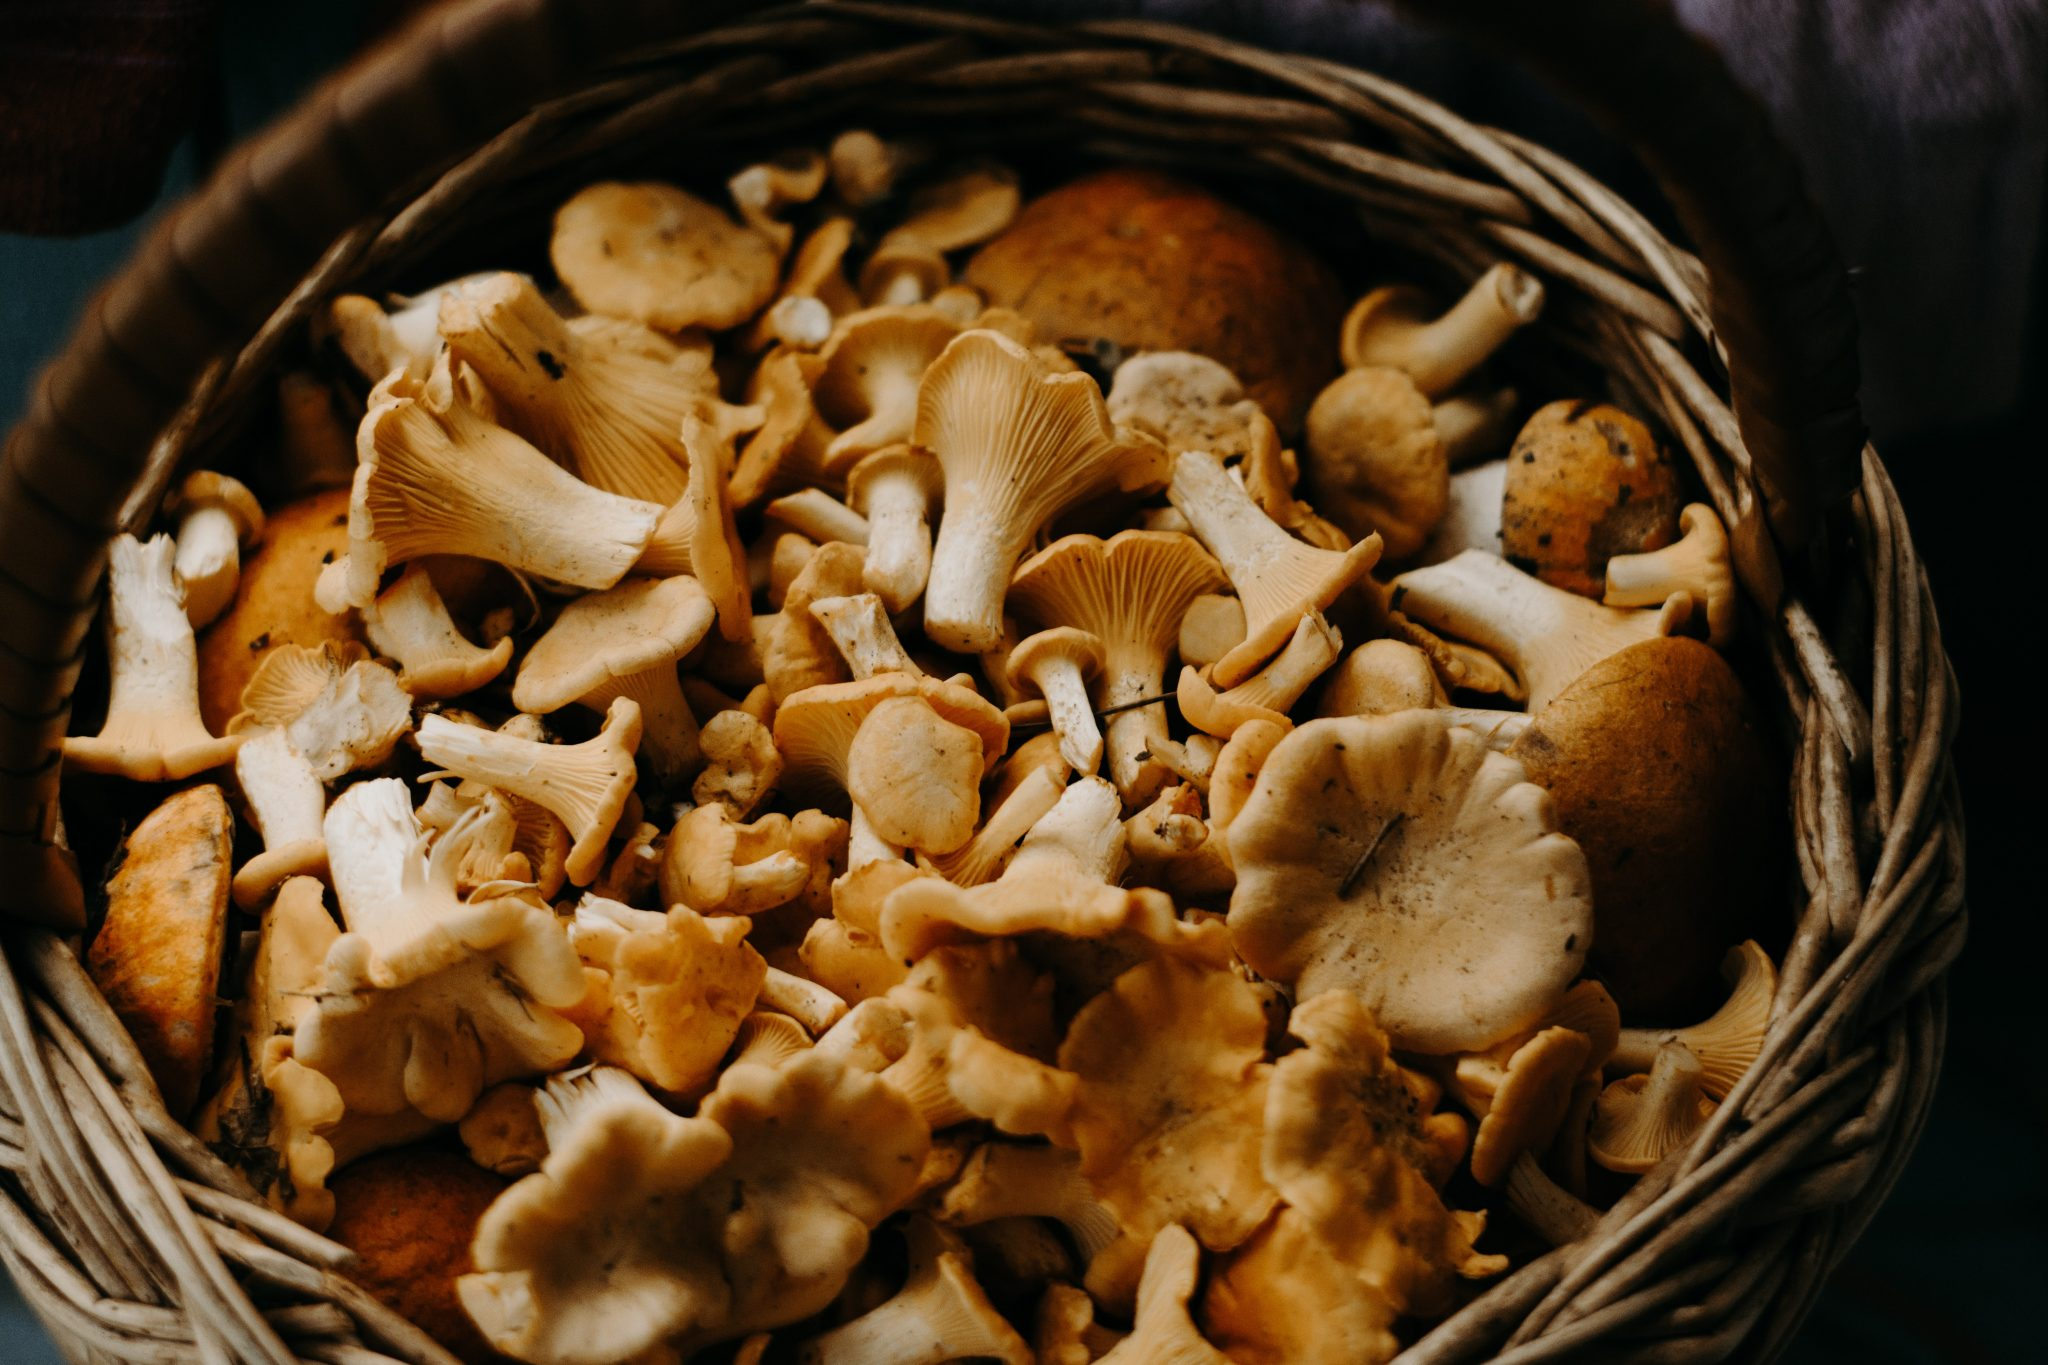 You'll die if you touch those mushrooms. Basket full of chanterelles. Enable images to view.